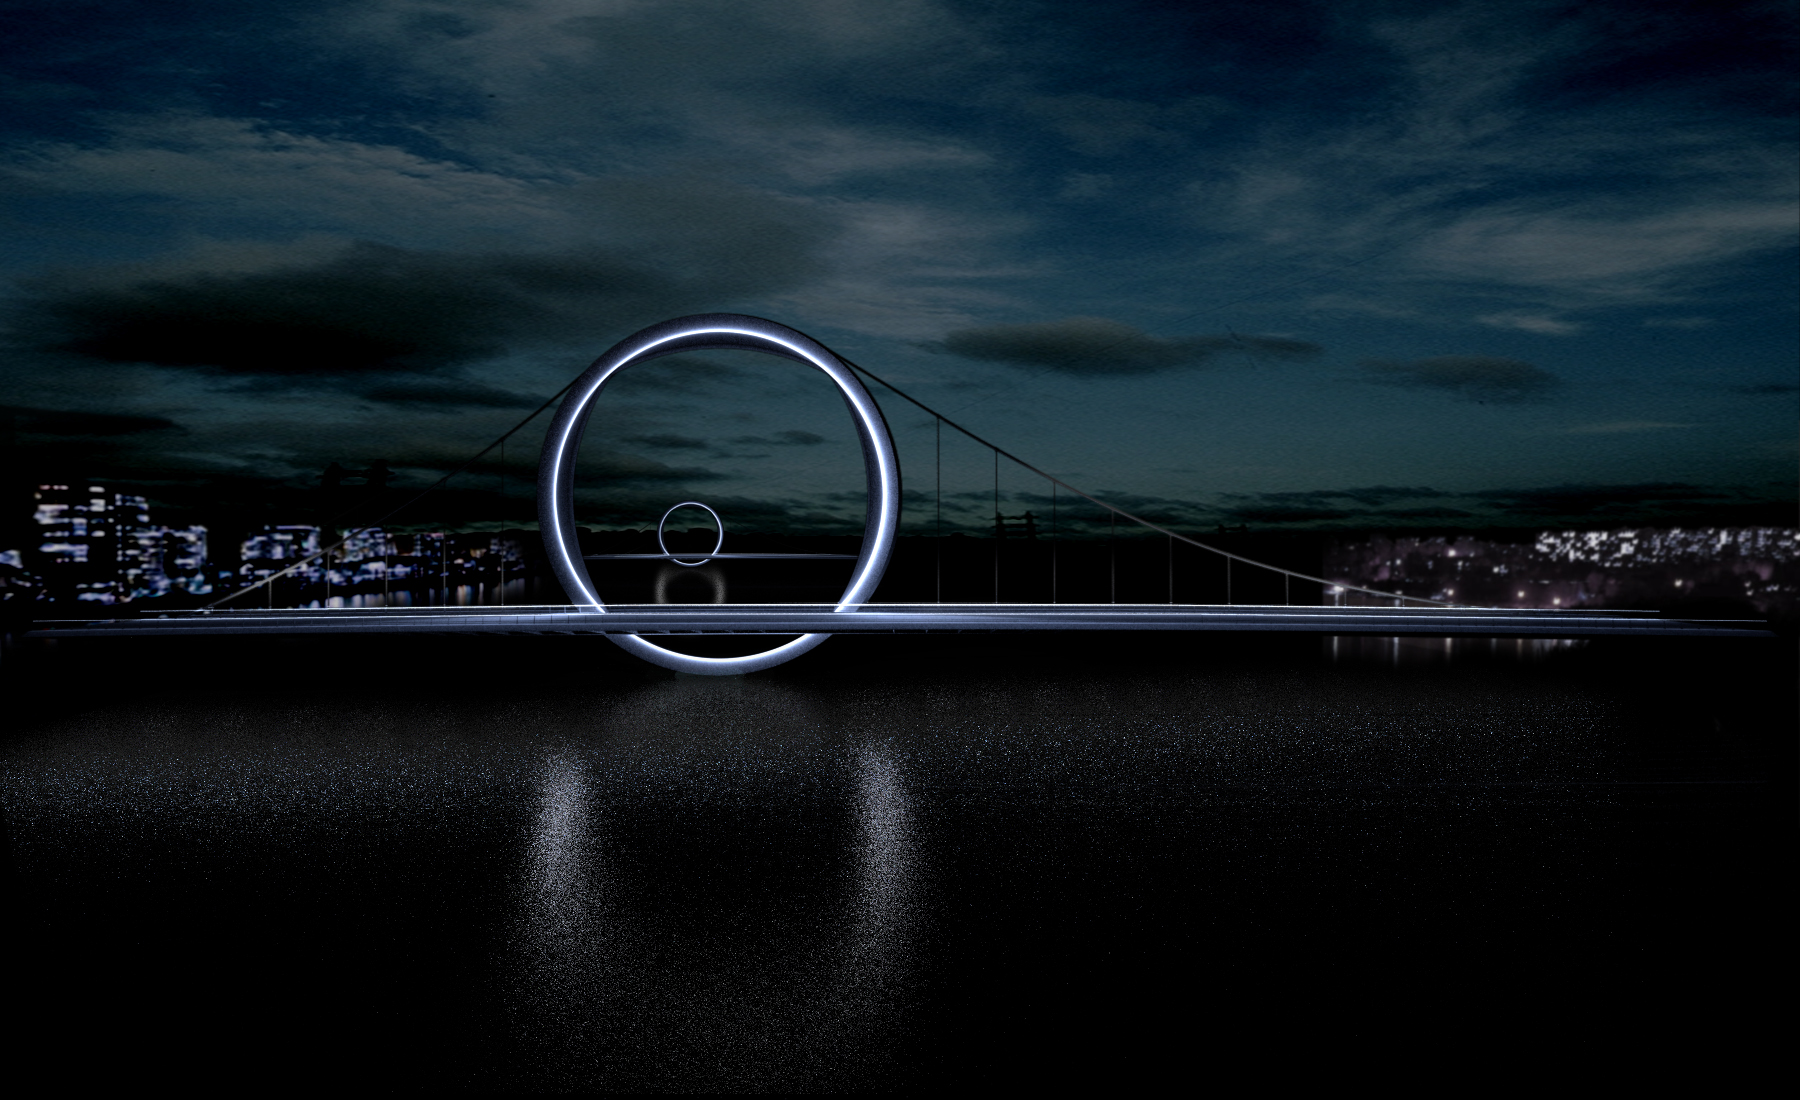 lusail-qatar - ring bridges (6).jpg